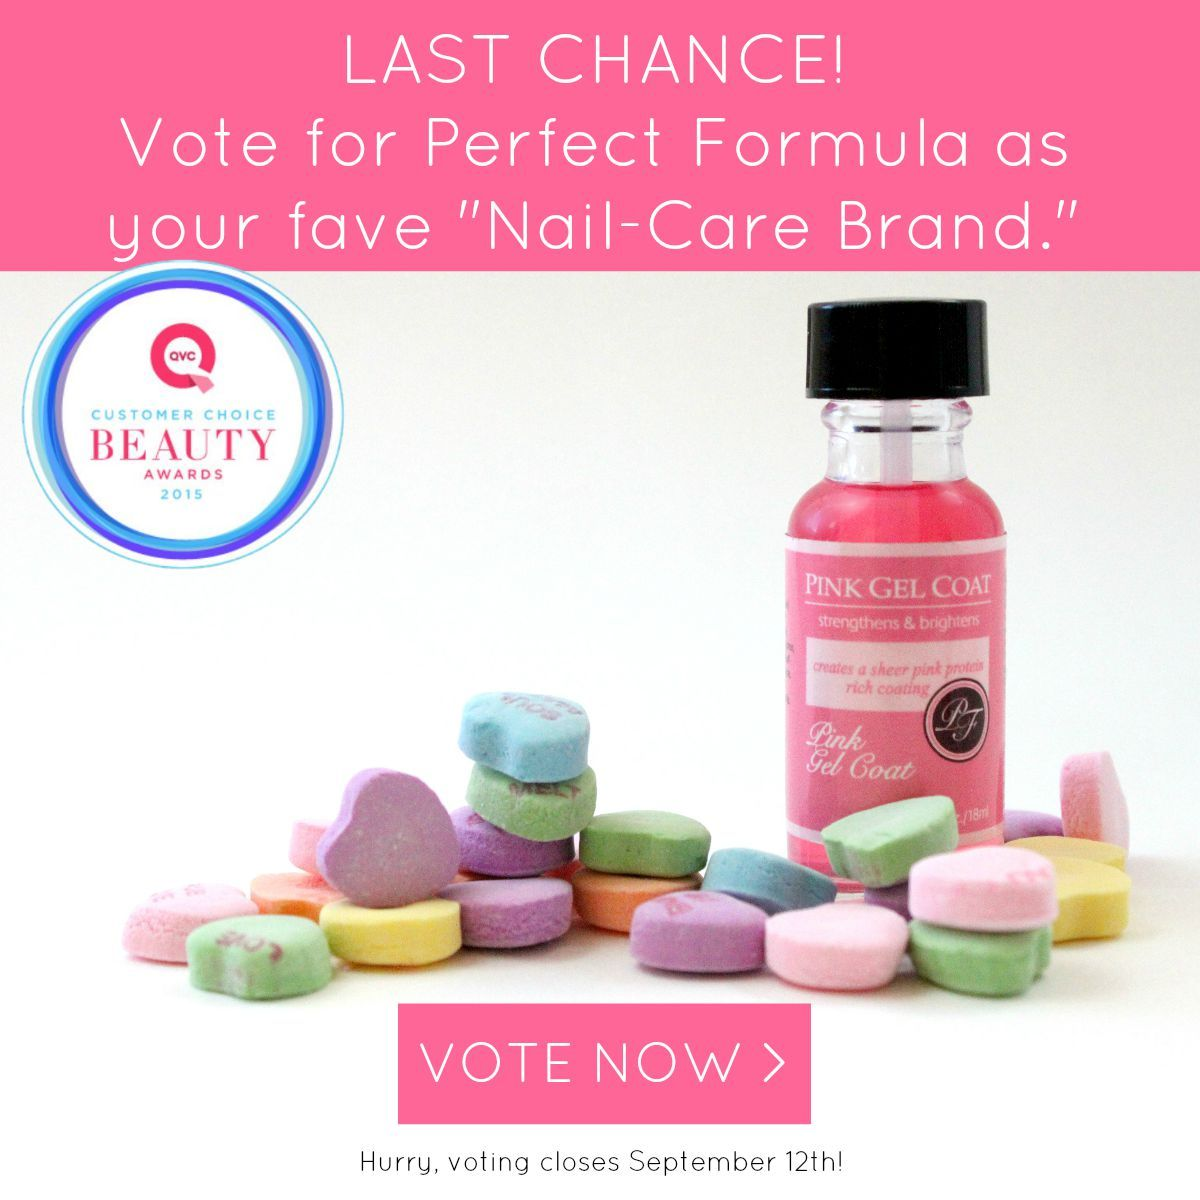 If you love Pink Gel Coat, vote for Perfect Formula as your favorite ...